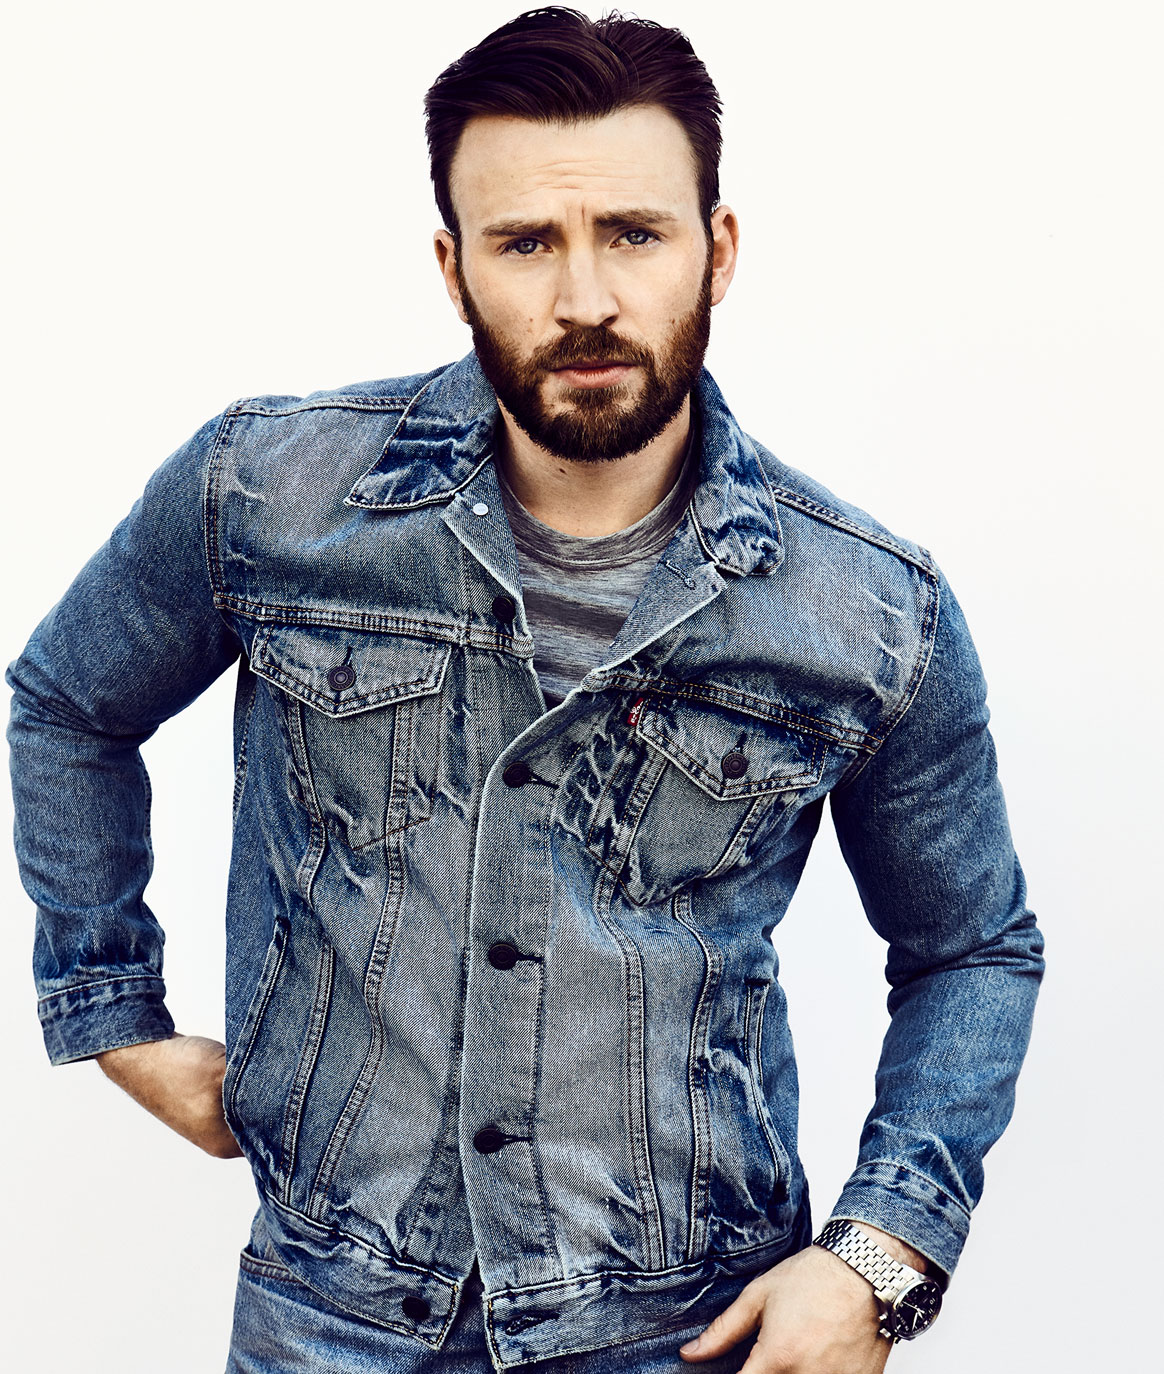 https://www.mensjournal.com/wp-content/uploads/2019/04/chris-evans-feature-1.jpg